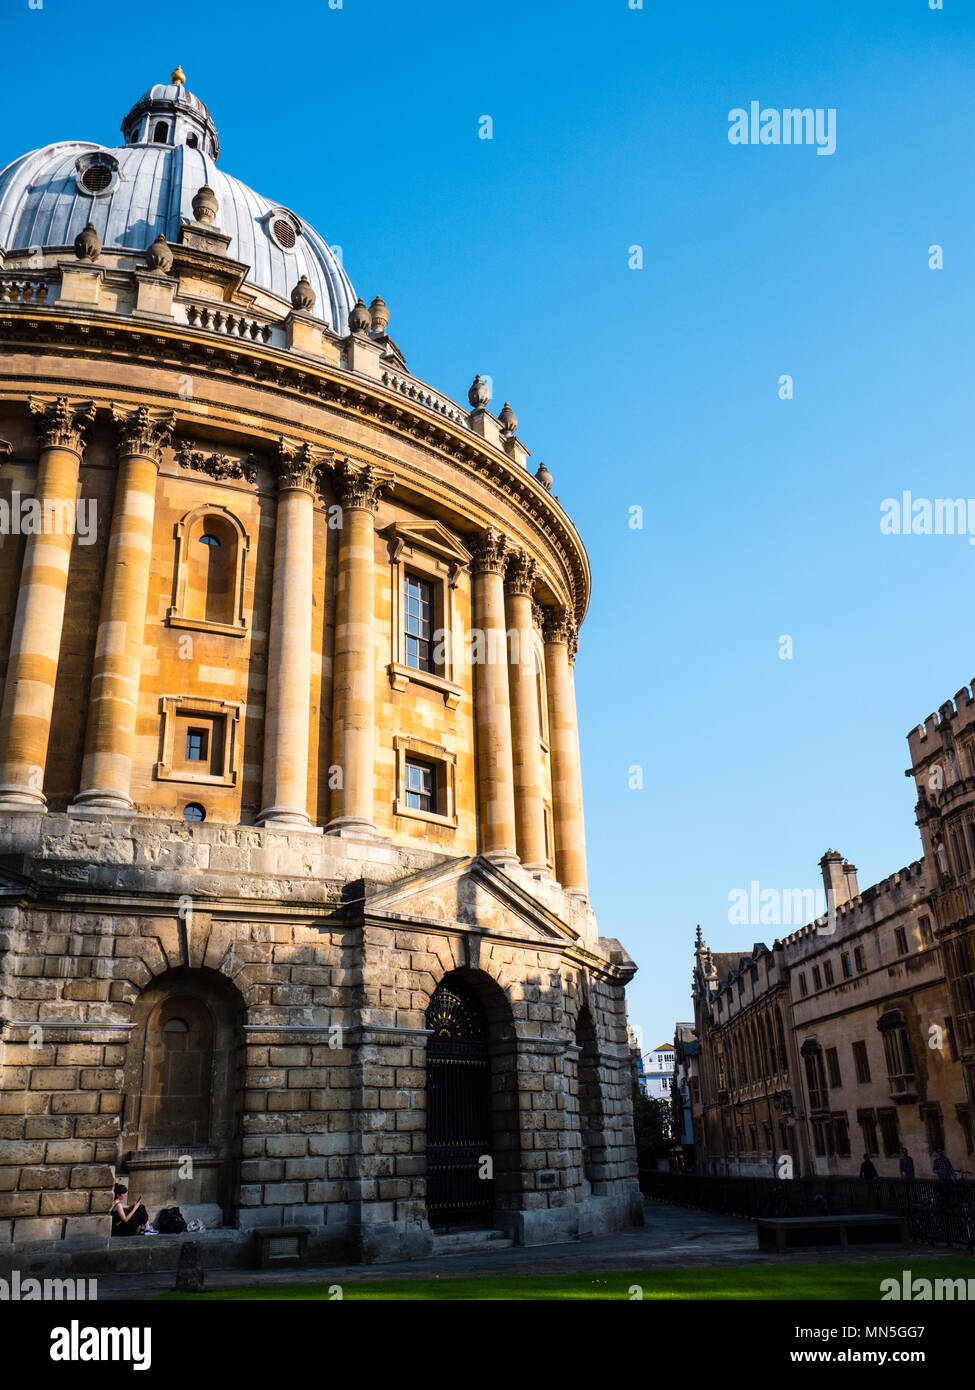 Woman Resting in Arch, Radcliffe Camera, University of Oxford Library, Oxford, Oxfordshire, England, UK, GB. - Stock Image